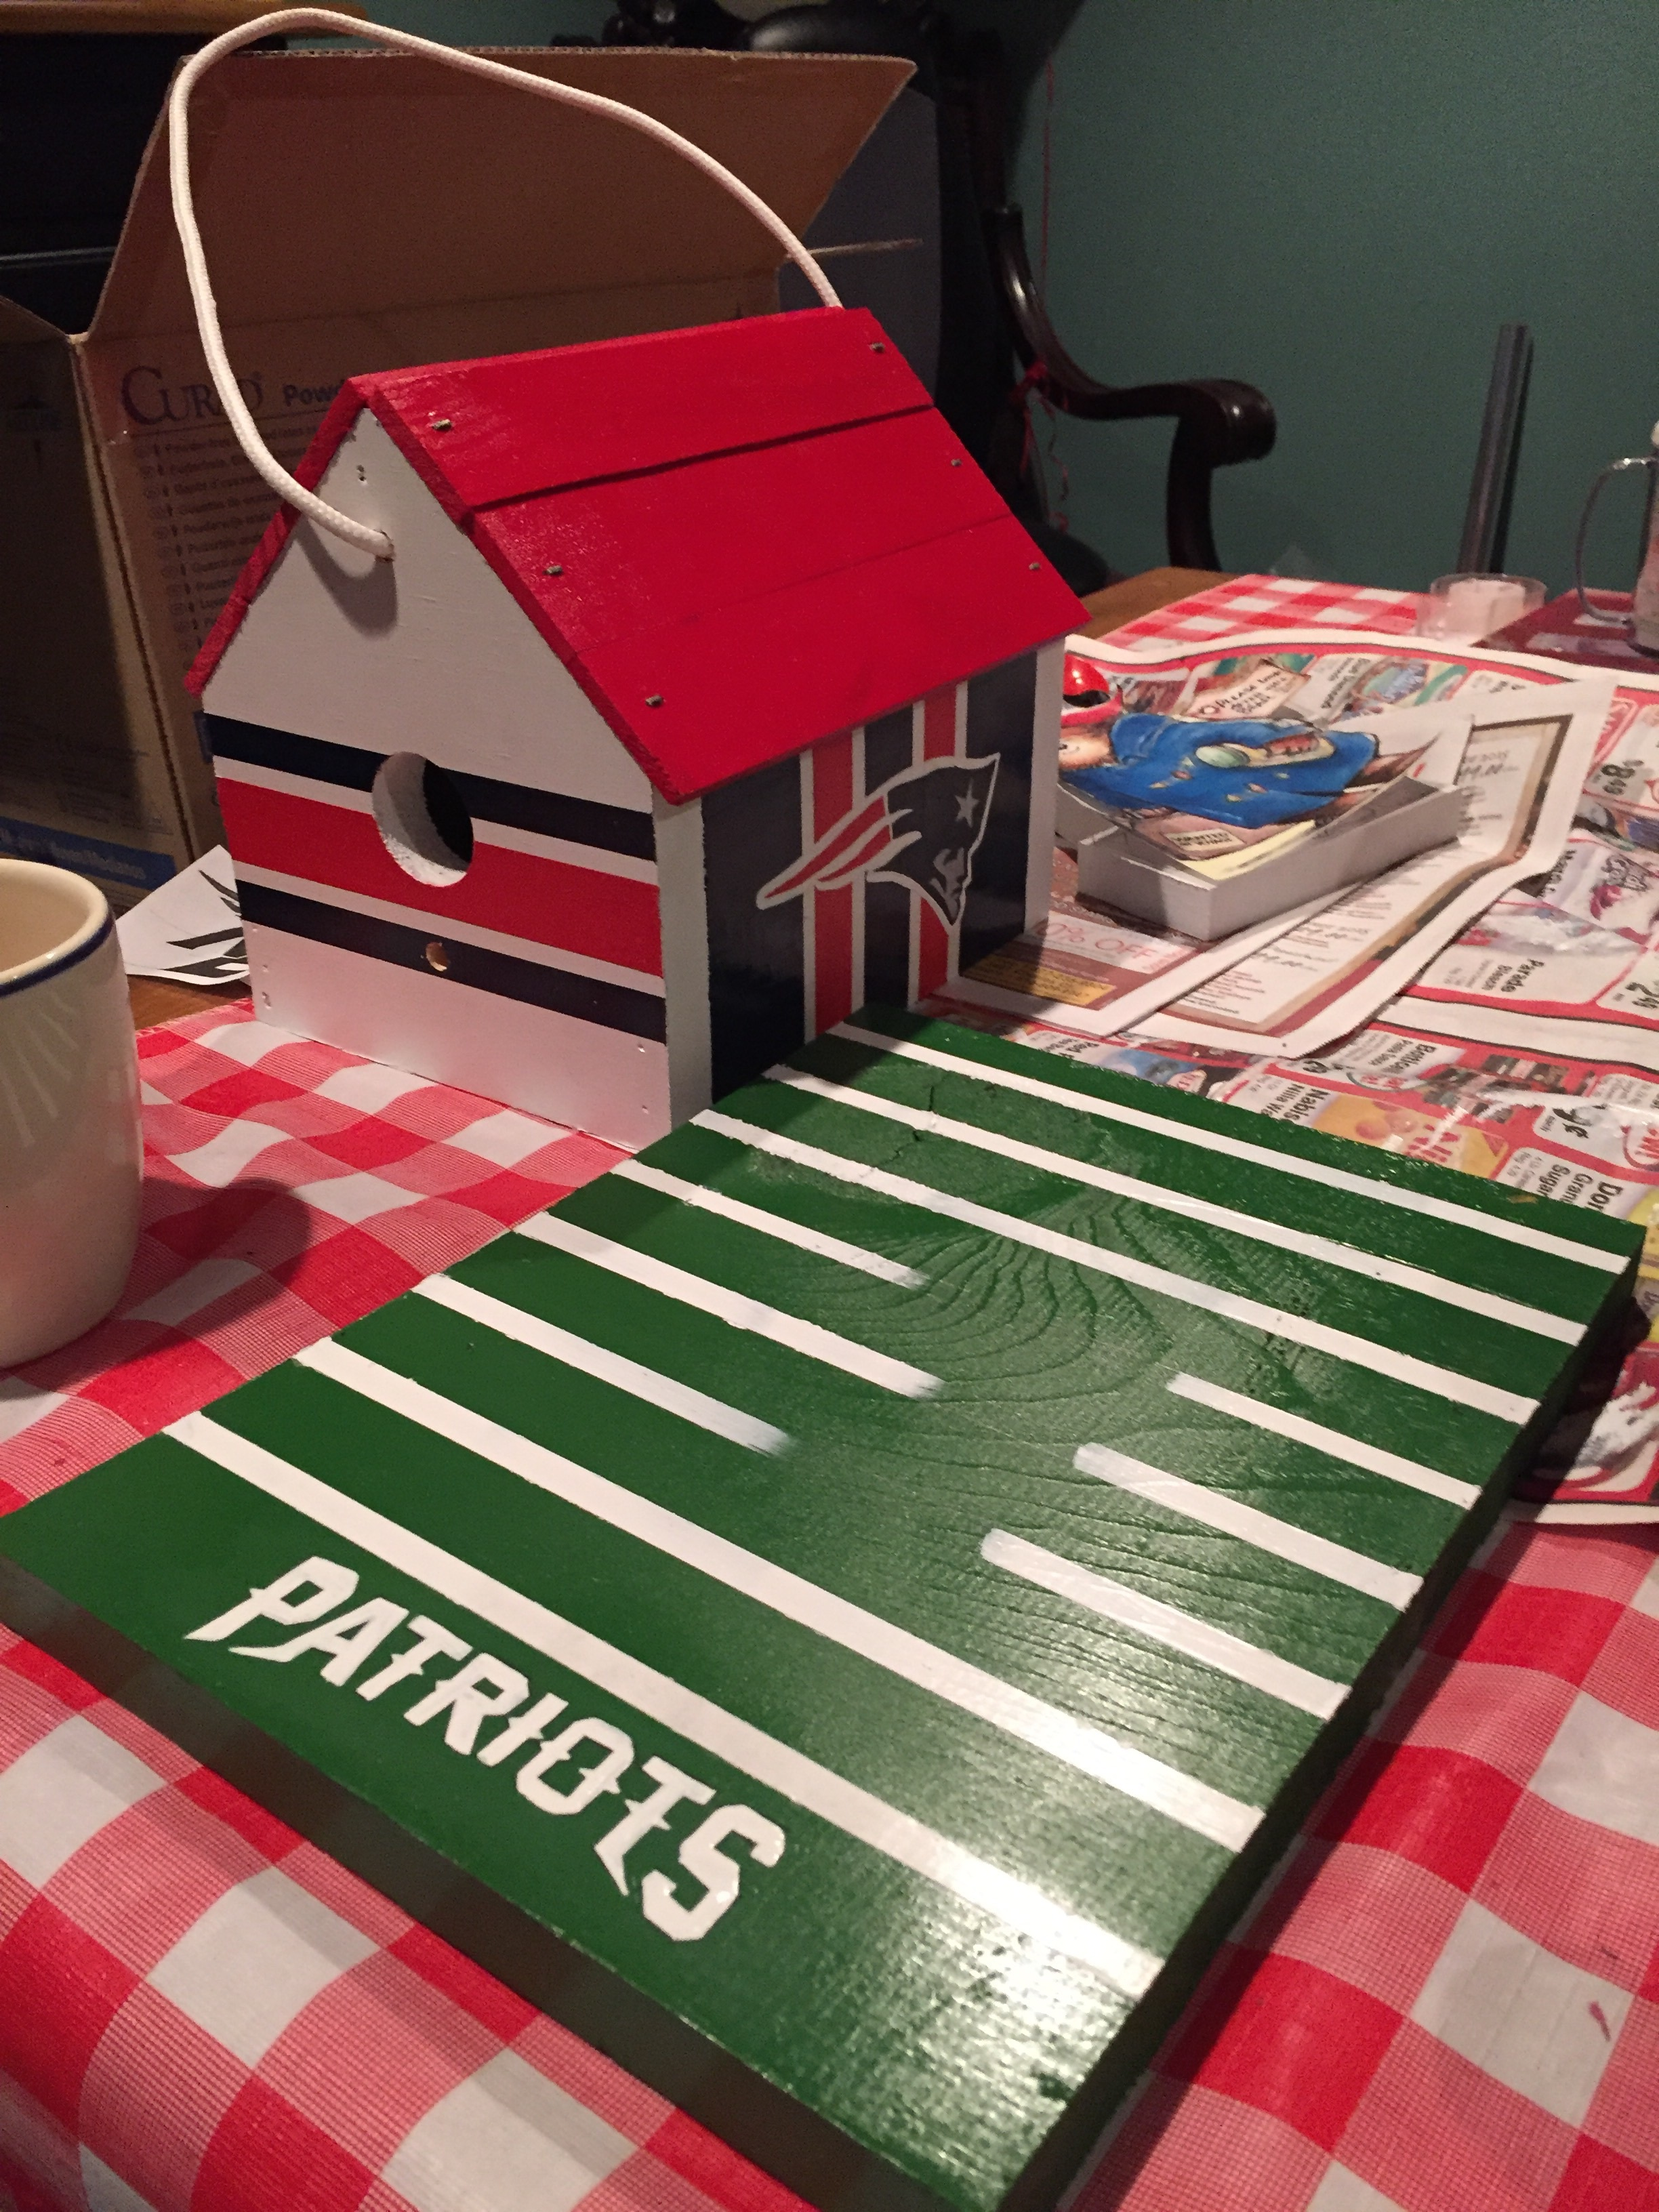 Just finished up this patriots house today. (Although I know nothing about football I do enjoy painting these houses)